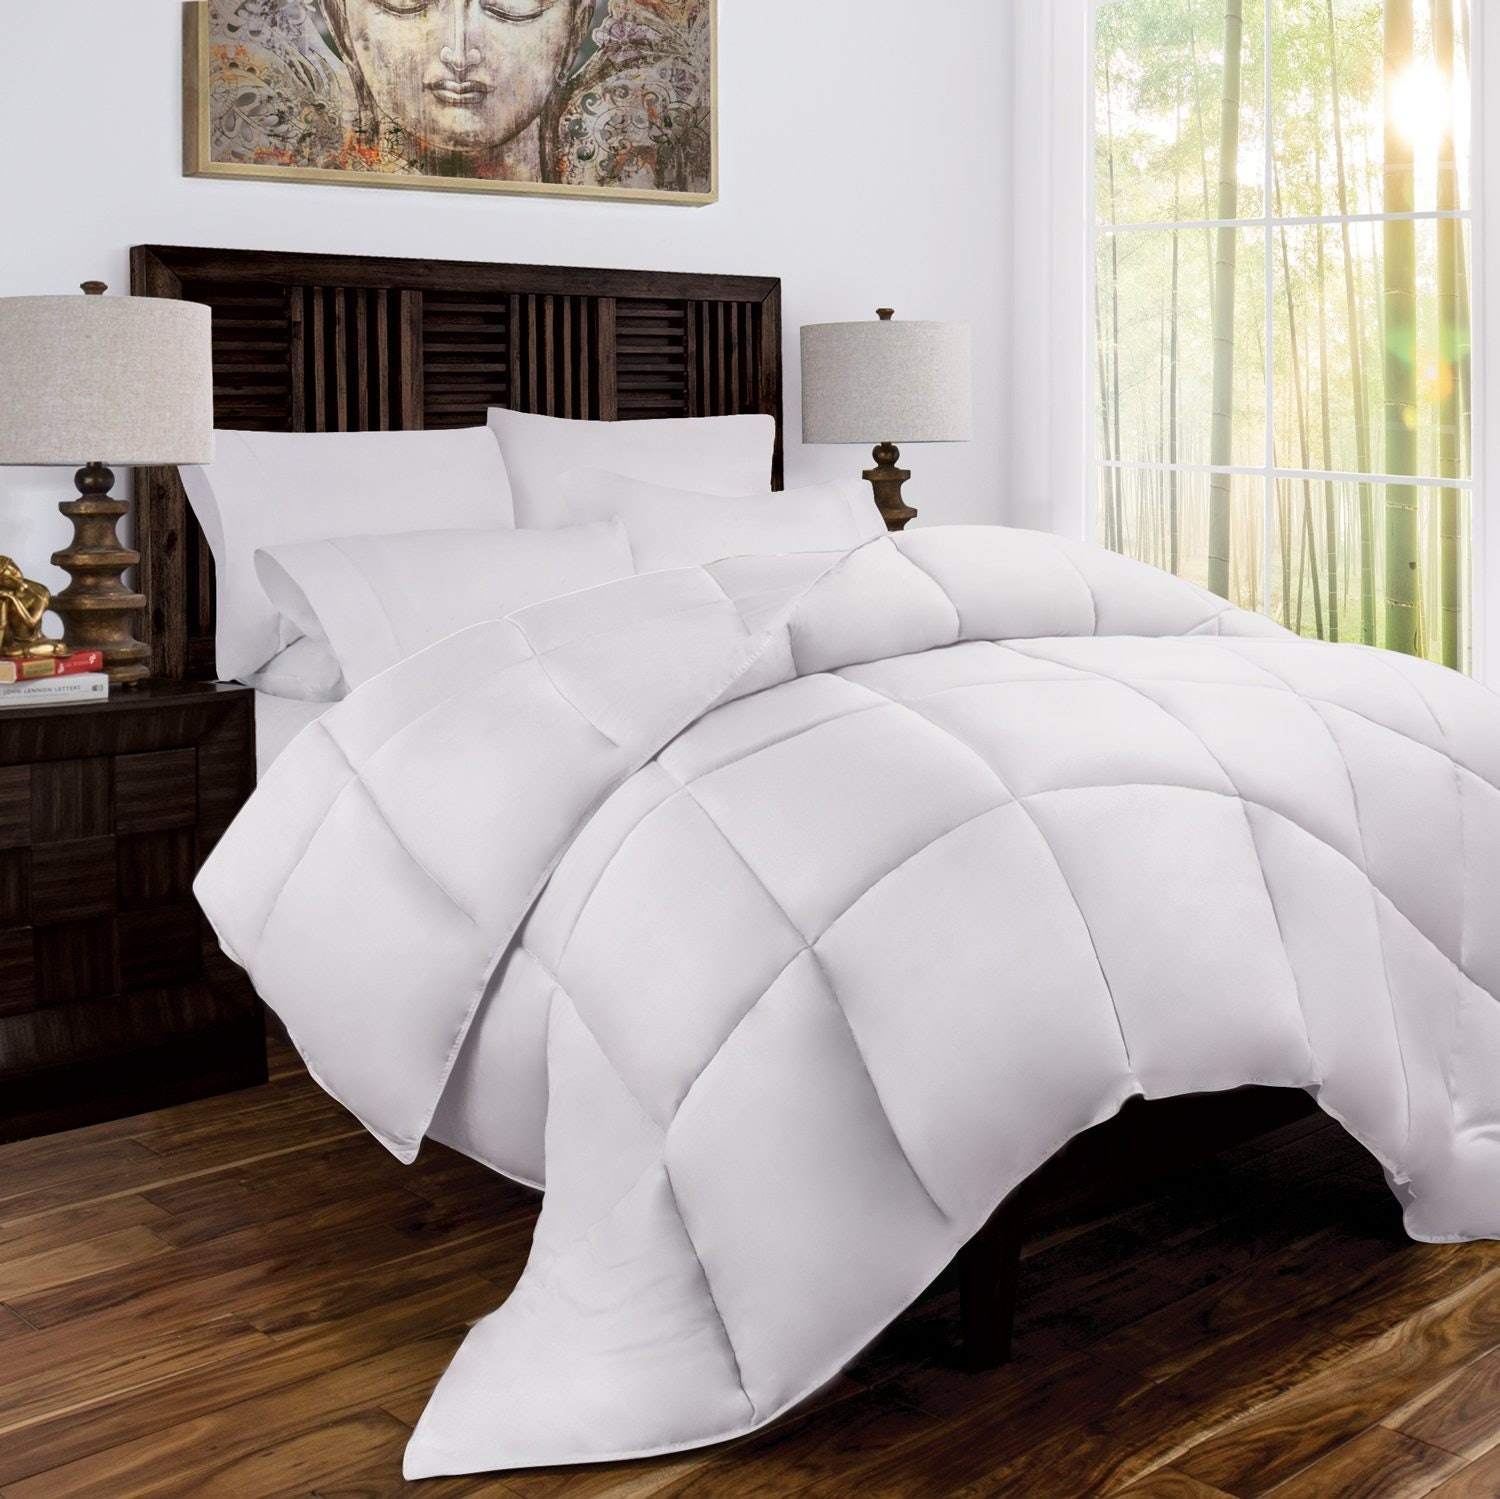 4A Brushed Bamboo U0026 Microfiber Comforter Thatu0027s Cool To The Touch